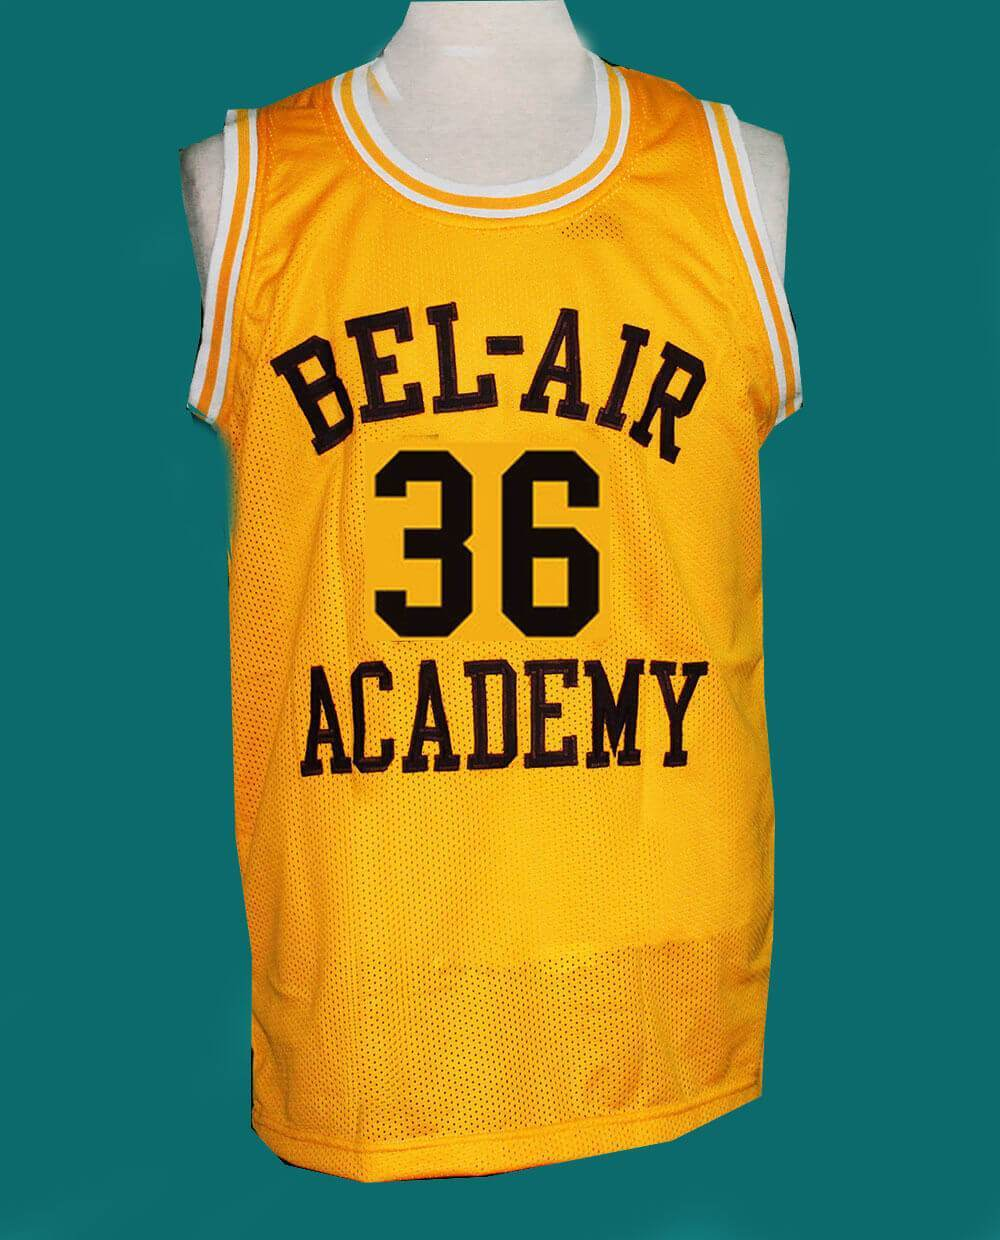 Bel Air Academy Jazz 36 Basketball Jersey - Jersey Champs